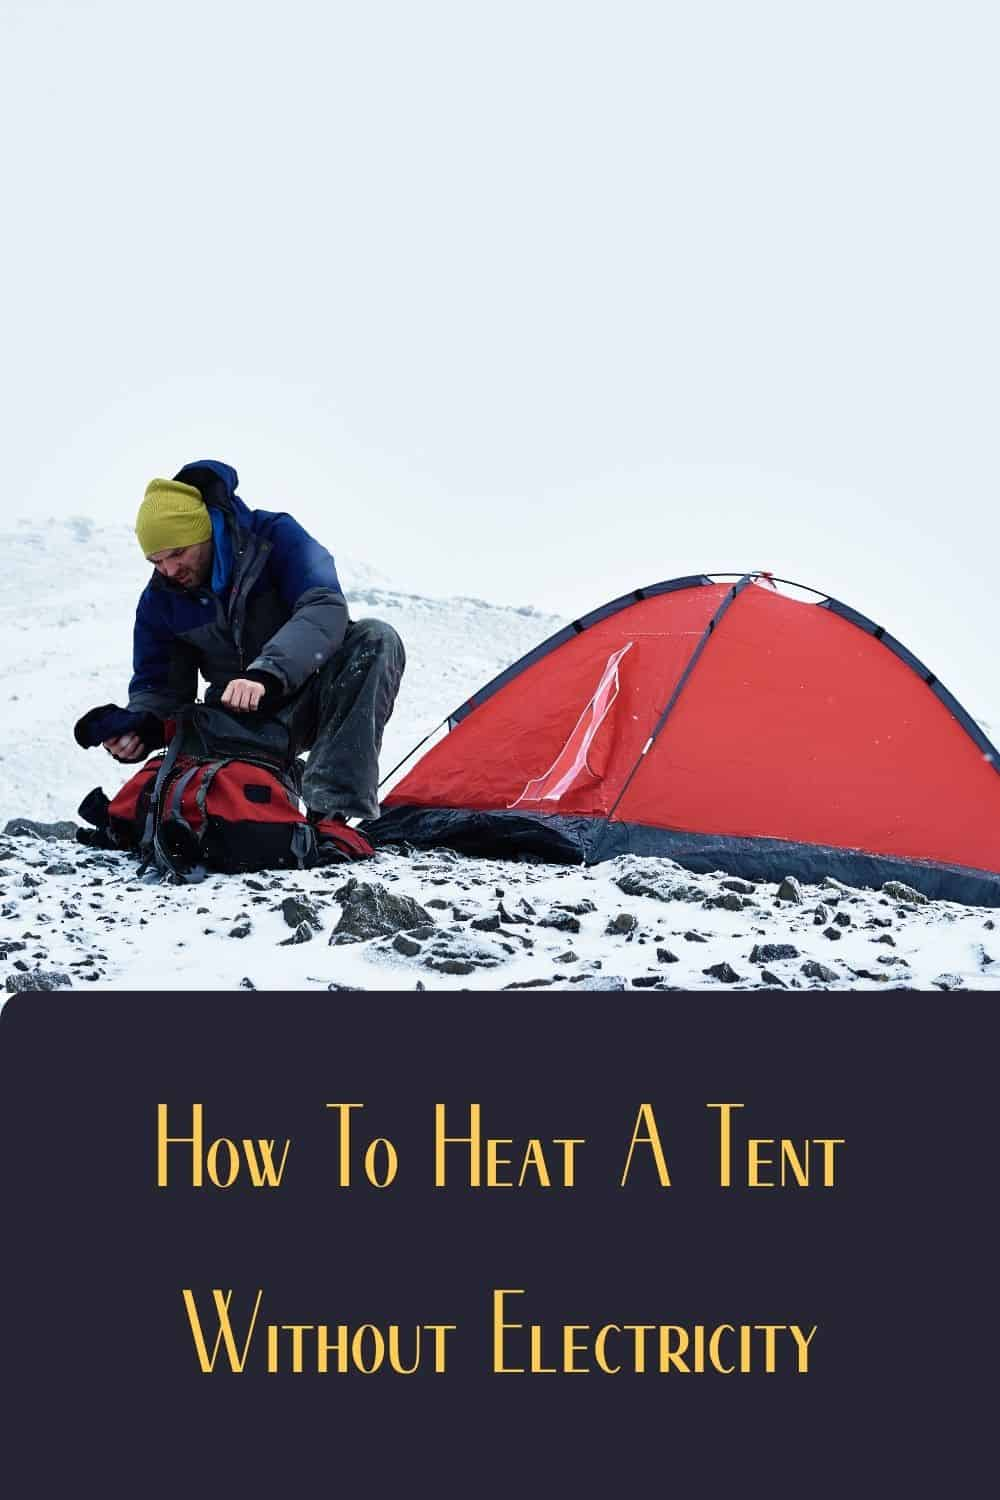 Pinterest image for How To Heat A Tent Without Electricity